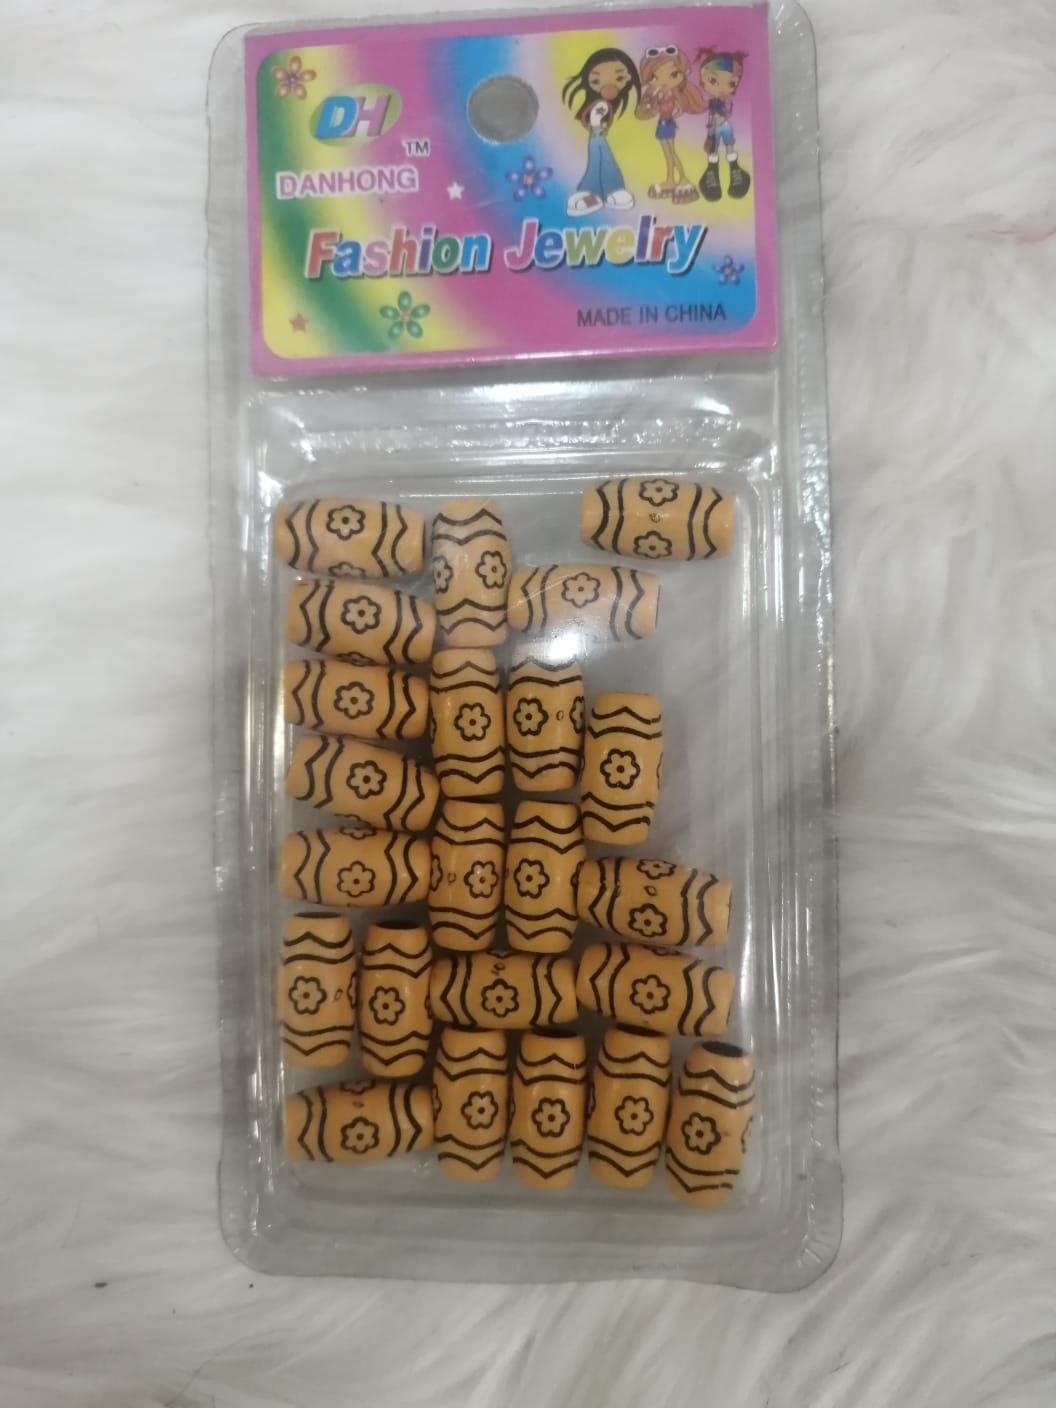 Danhong Fashion Jewelry Hair bead in Gold patterns